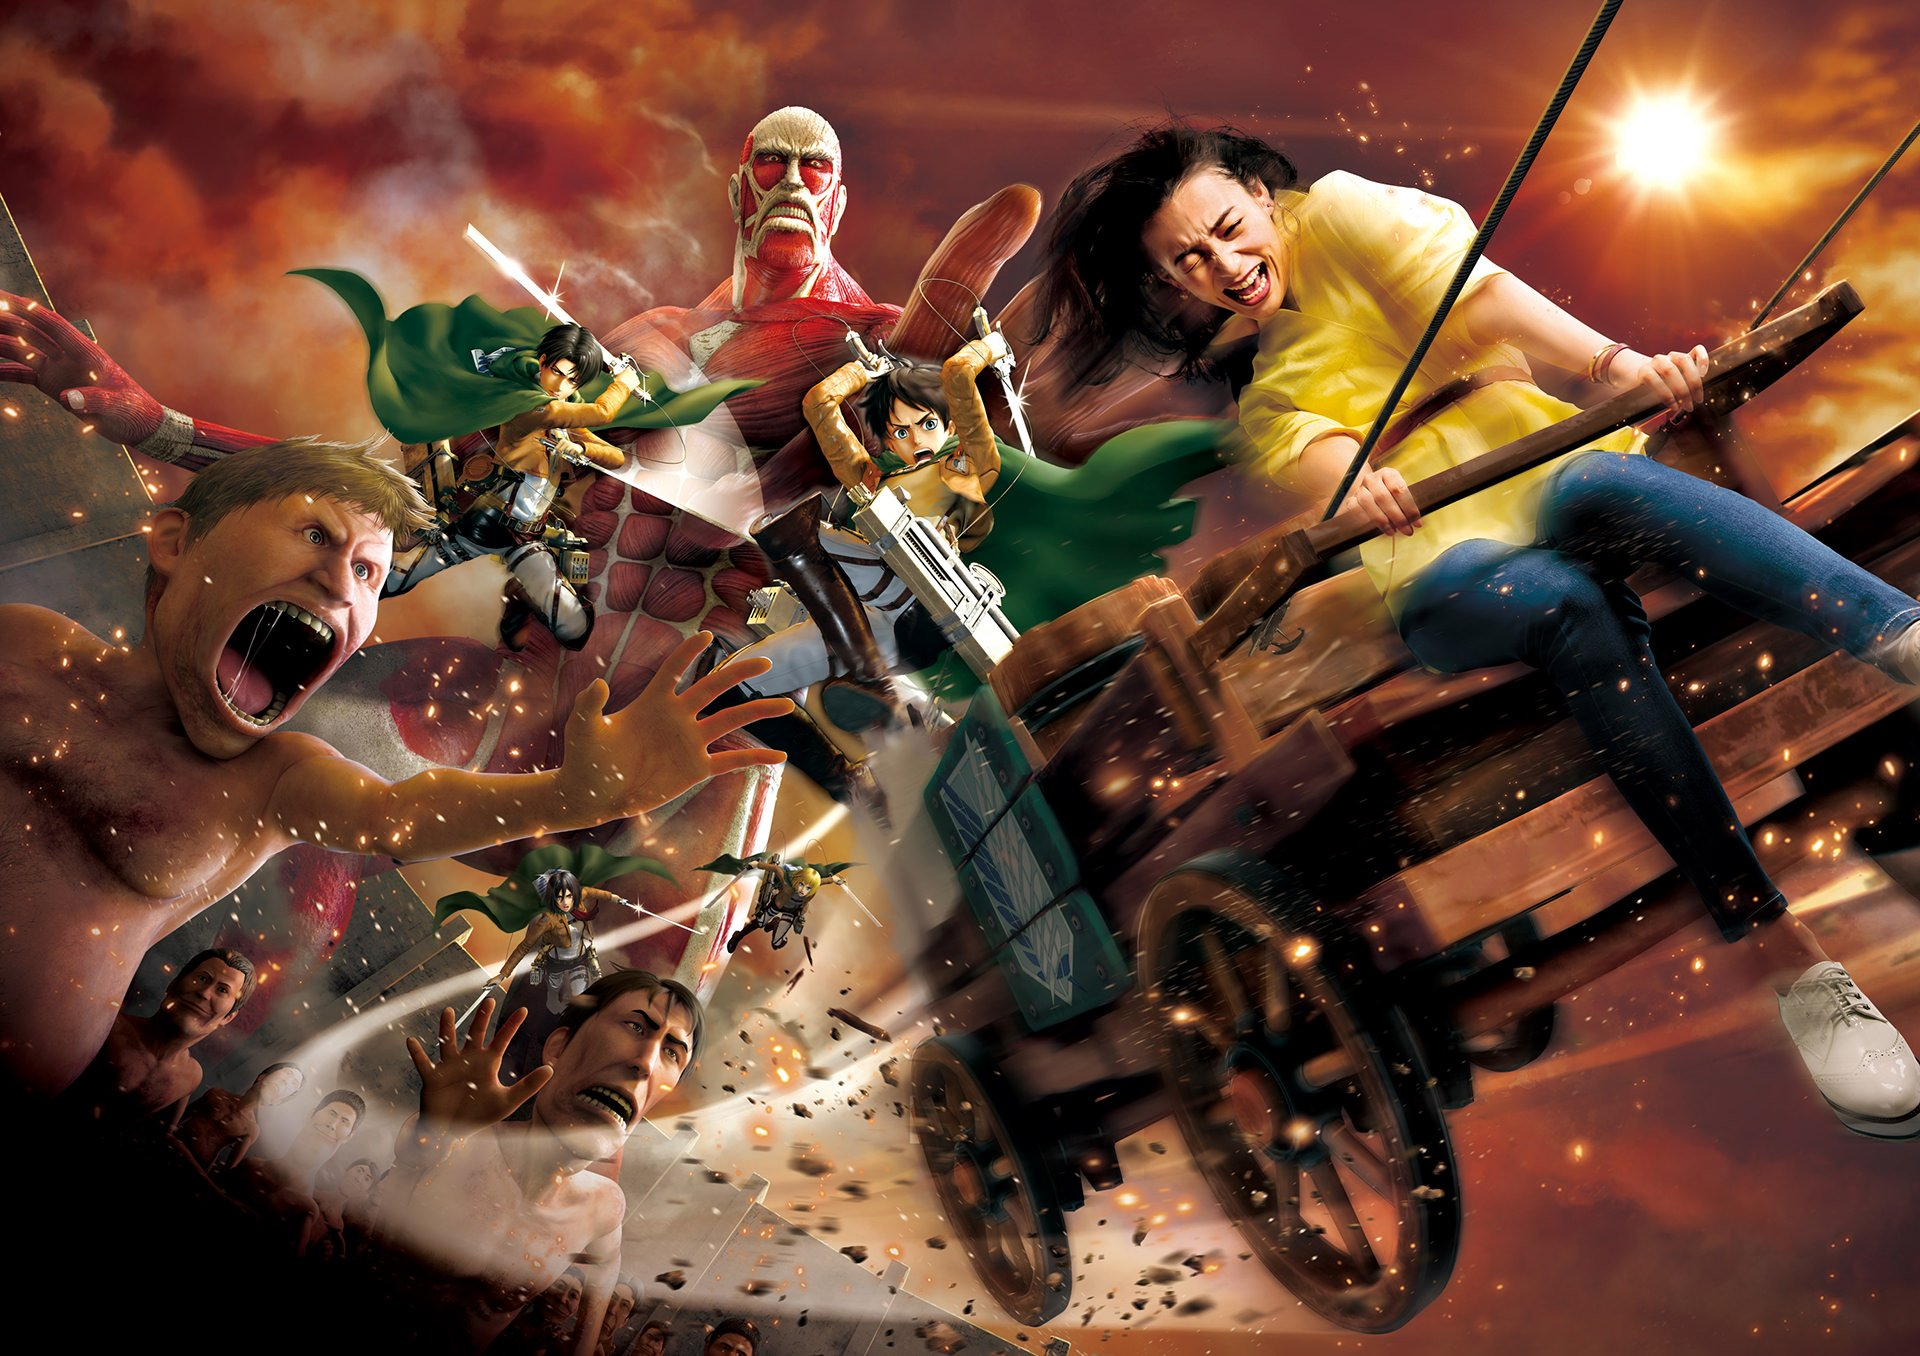 Attack on Titan Ride at Universal Studios Japan Detailed in New Promo